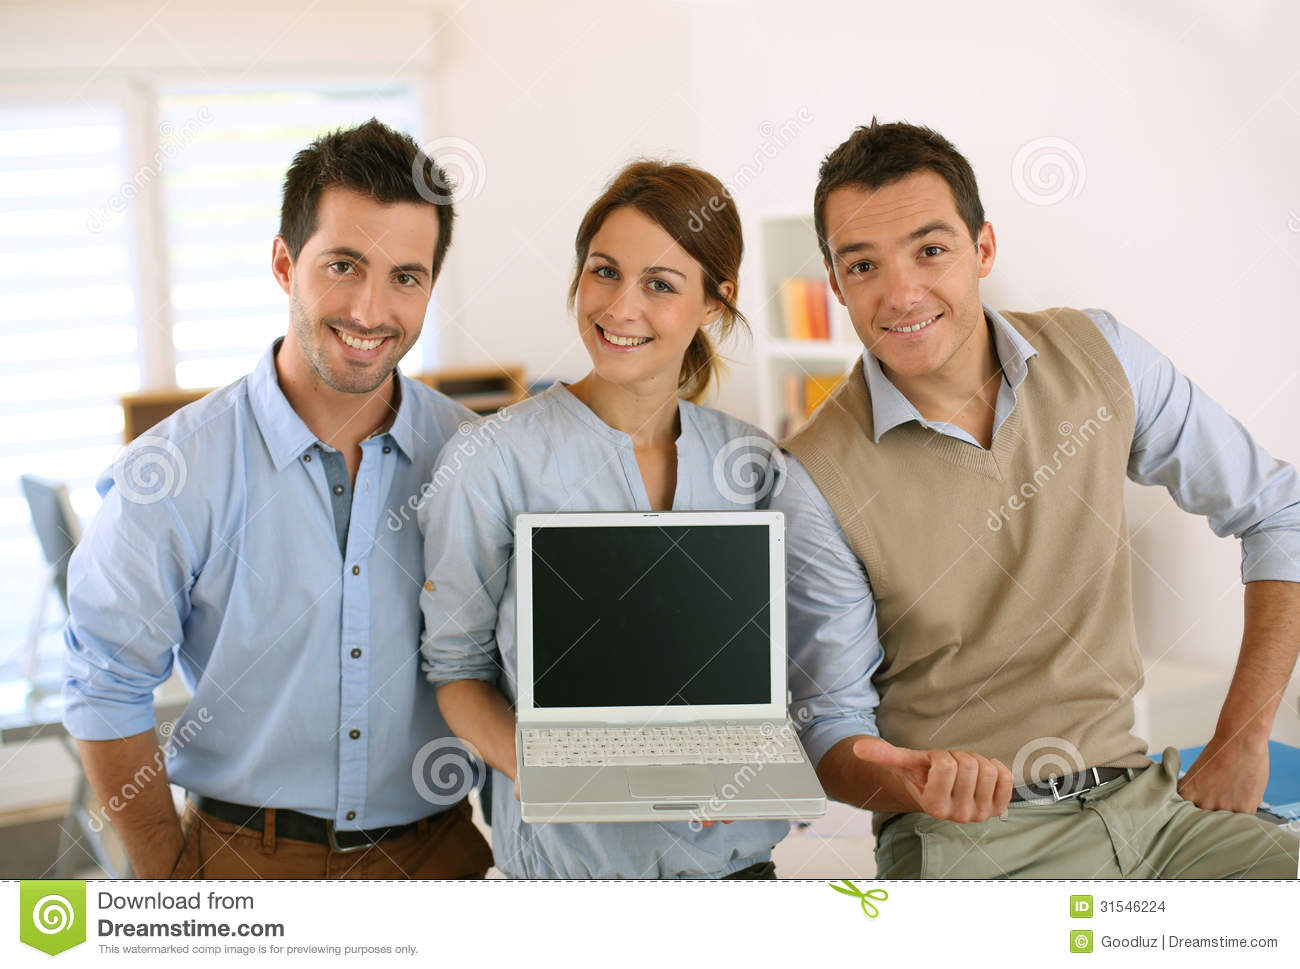 Young startup showing text or results on laptop screen